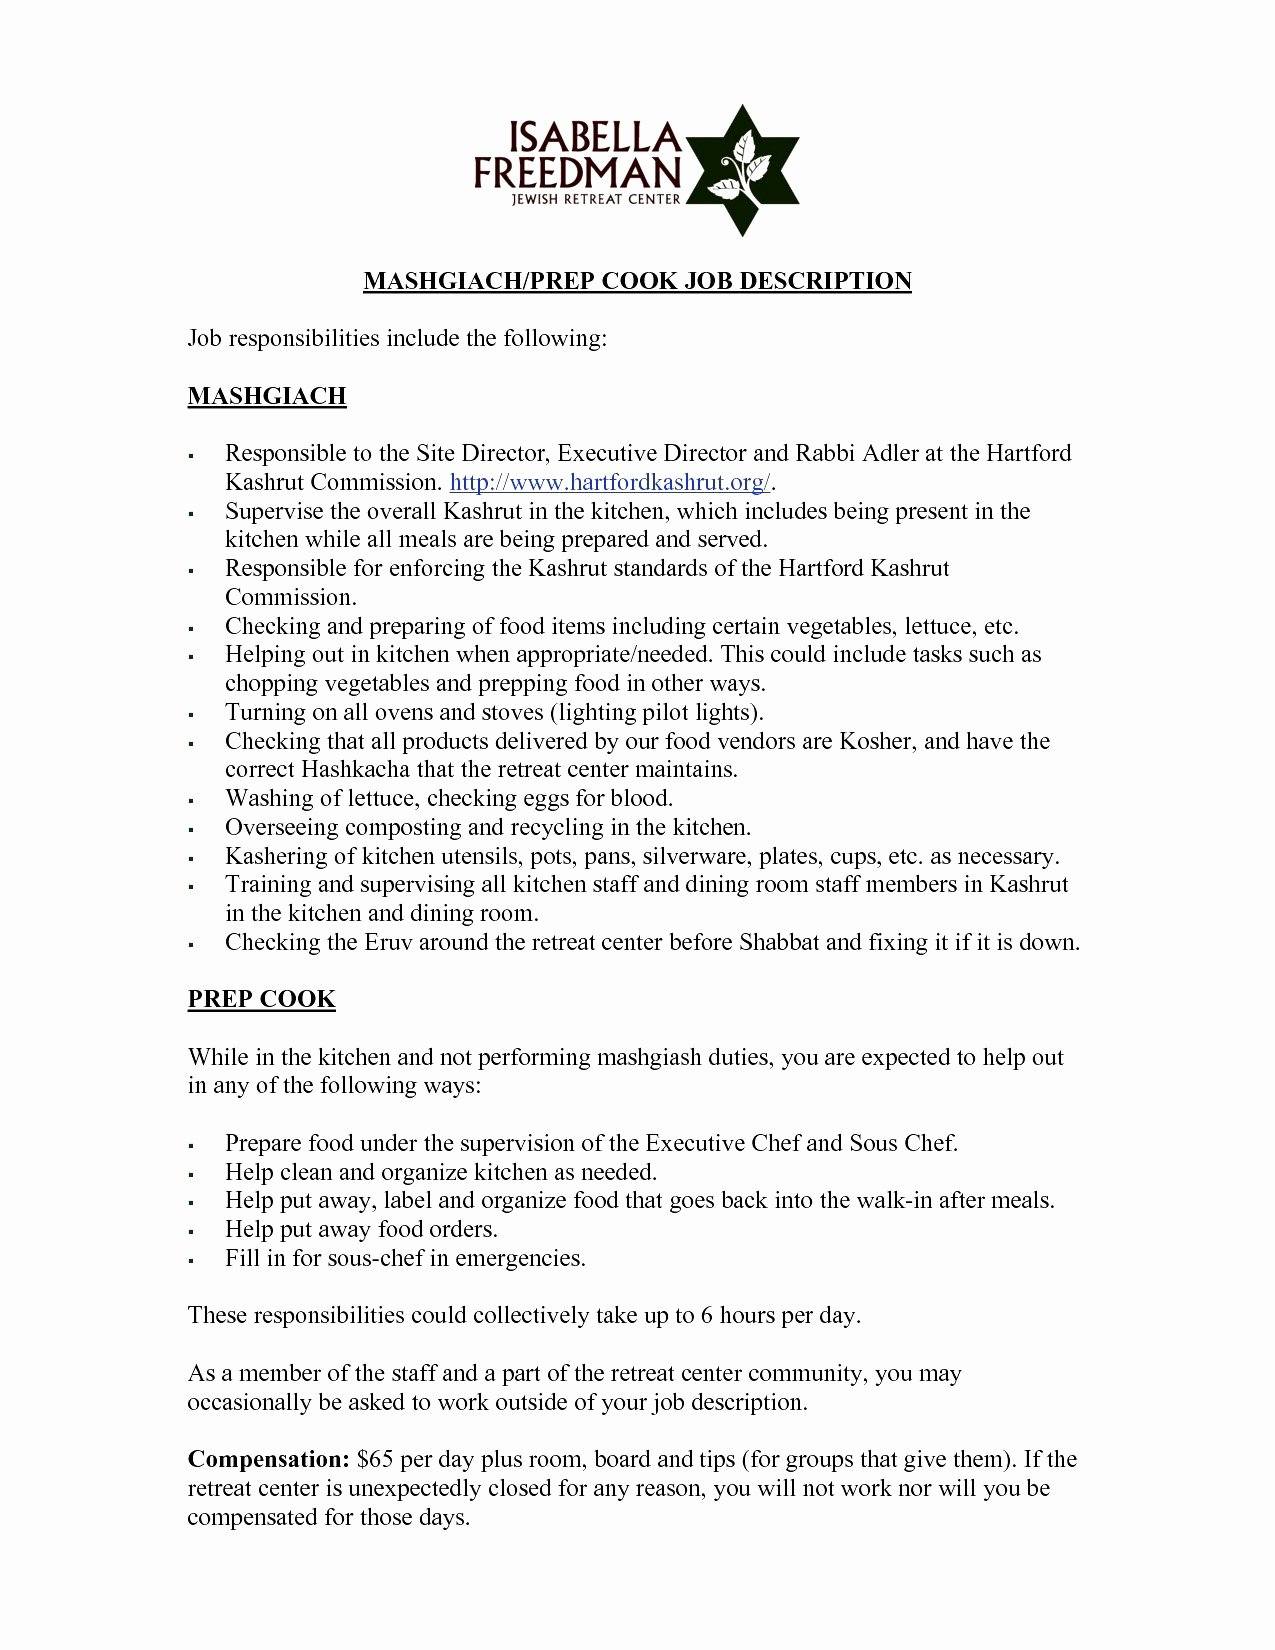 20 Awesome Administrative assistant Resumes